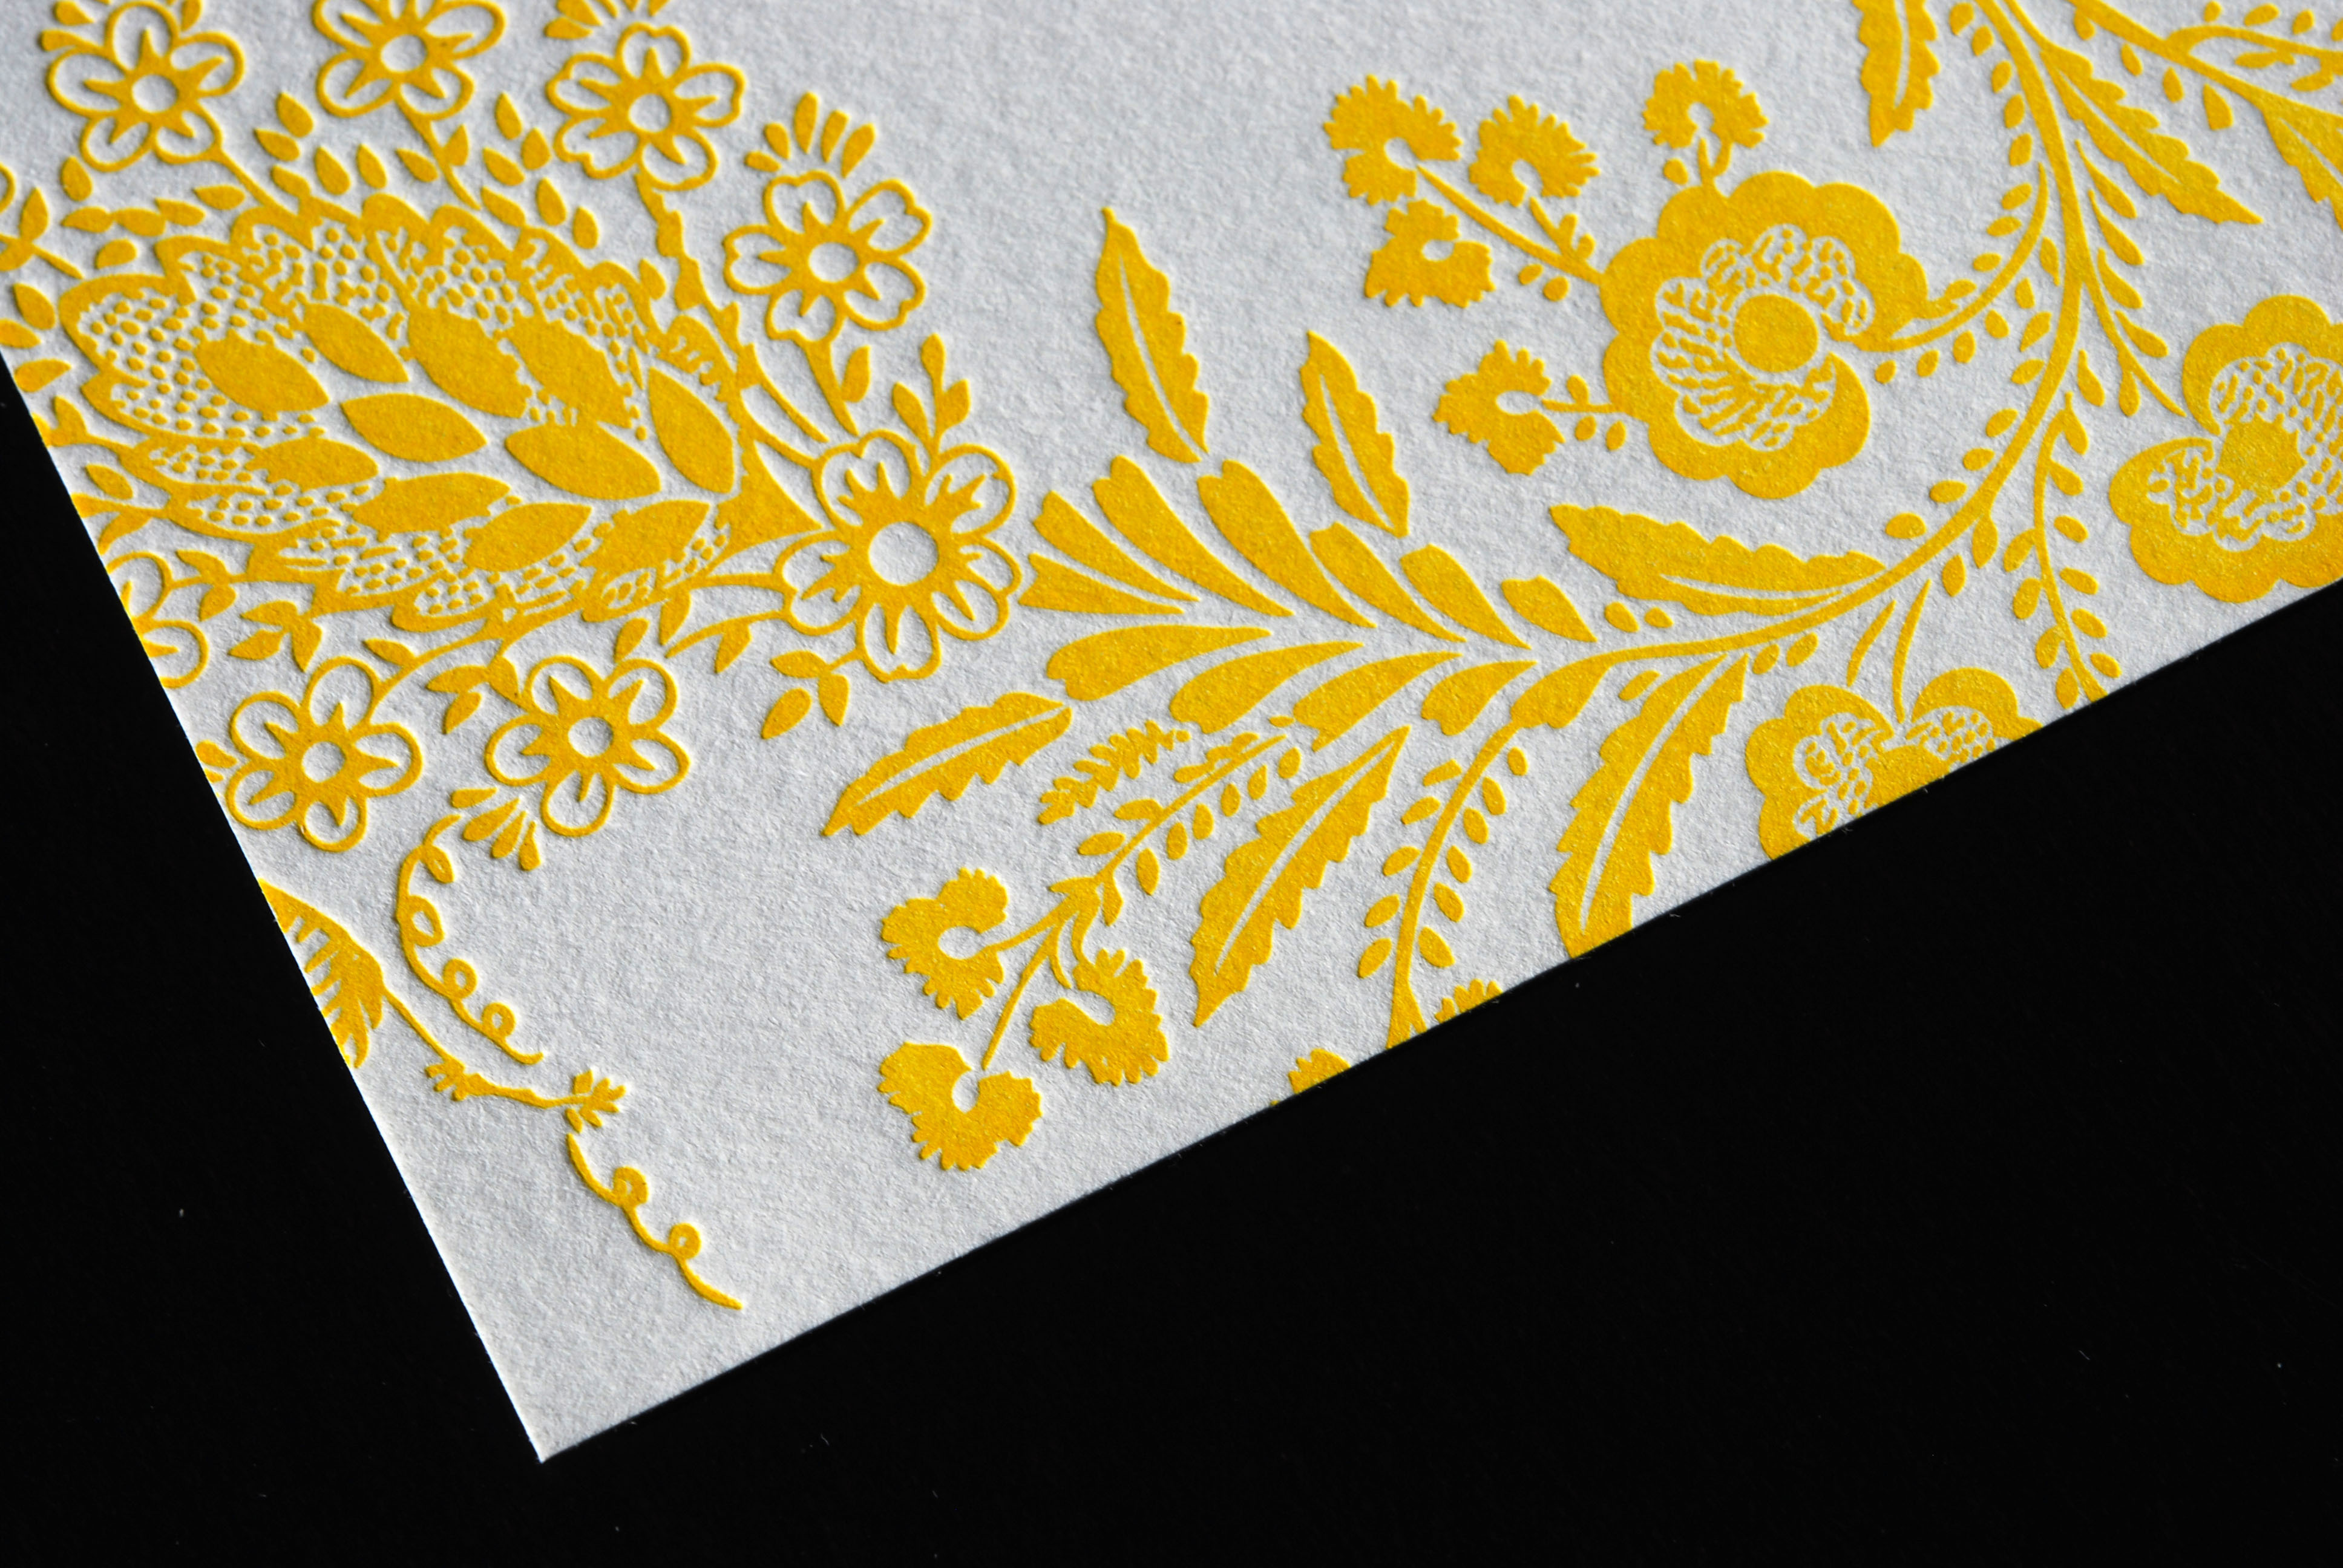 Stationery, yellow, gray, invitation, Modern, Classic, Classic Wedding Invitations, Modern Wedding Invitations, Invitations, Bouquet, Floral, Letterpress, Fresh, The aerialist press